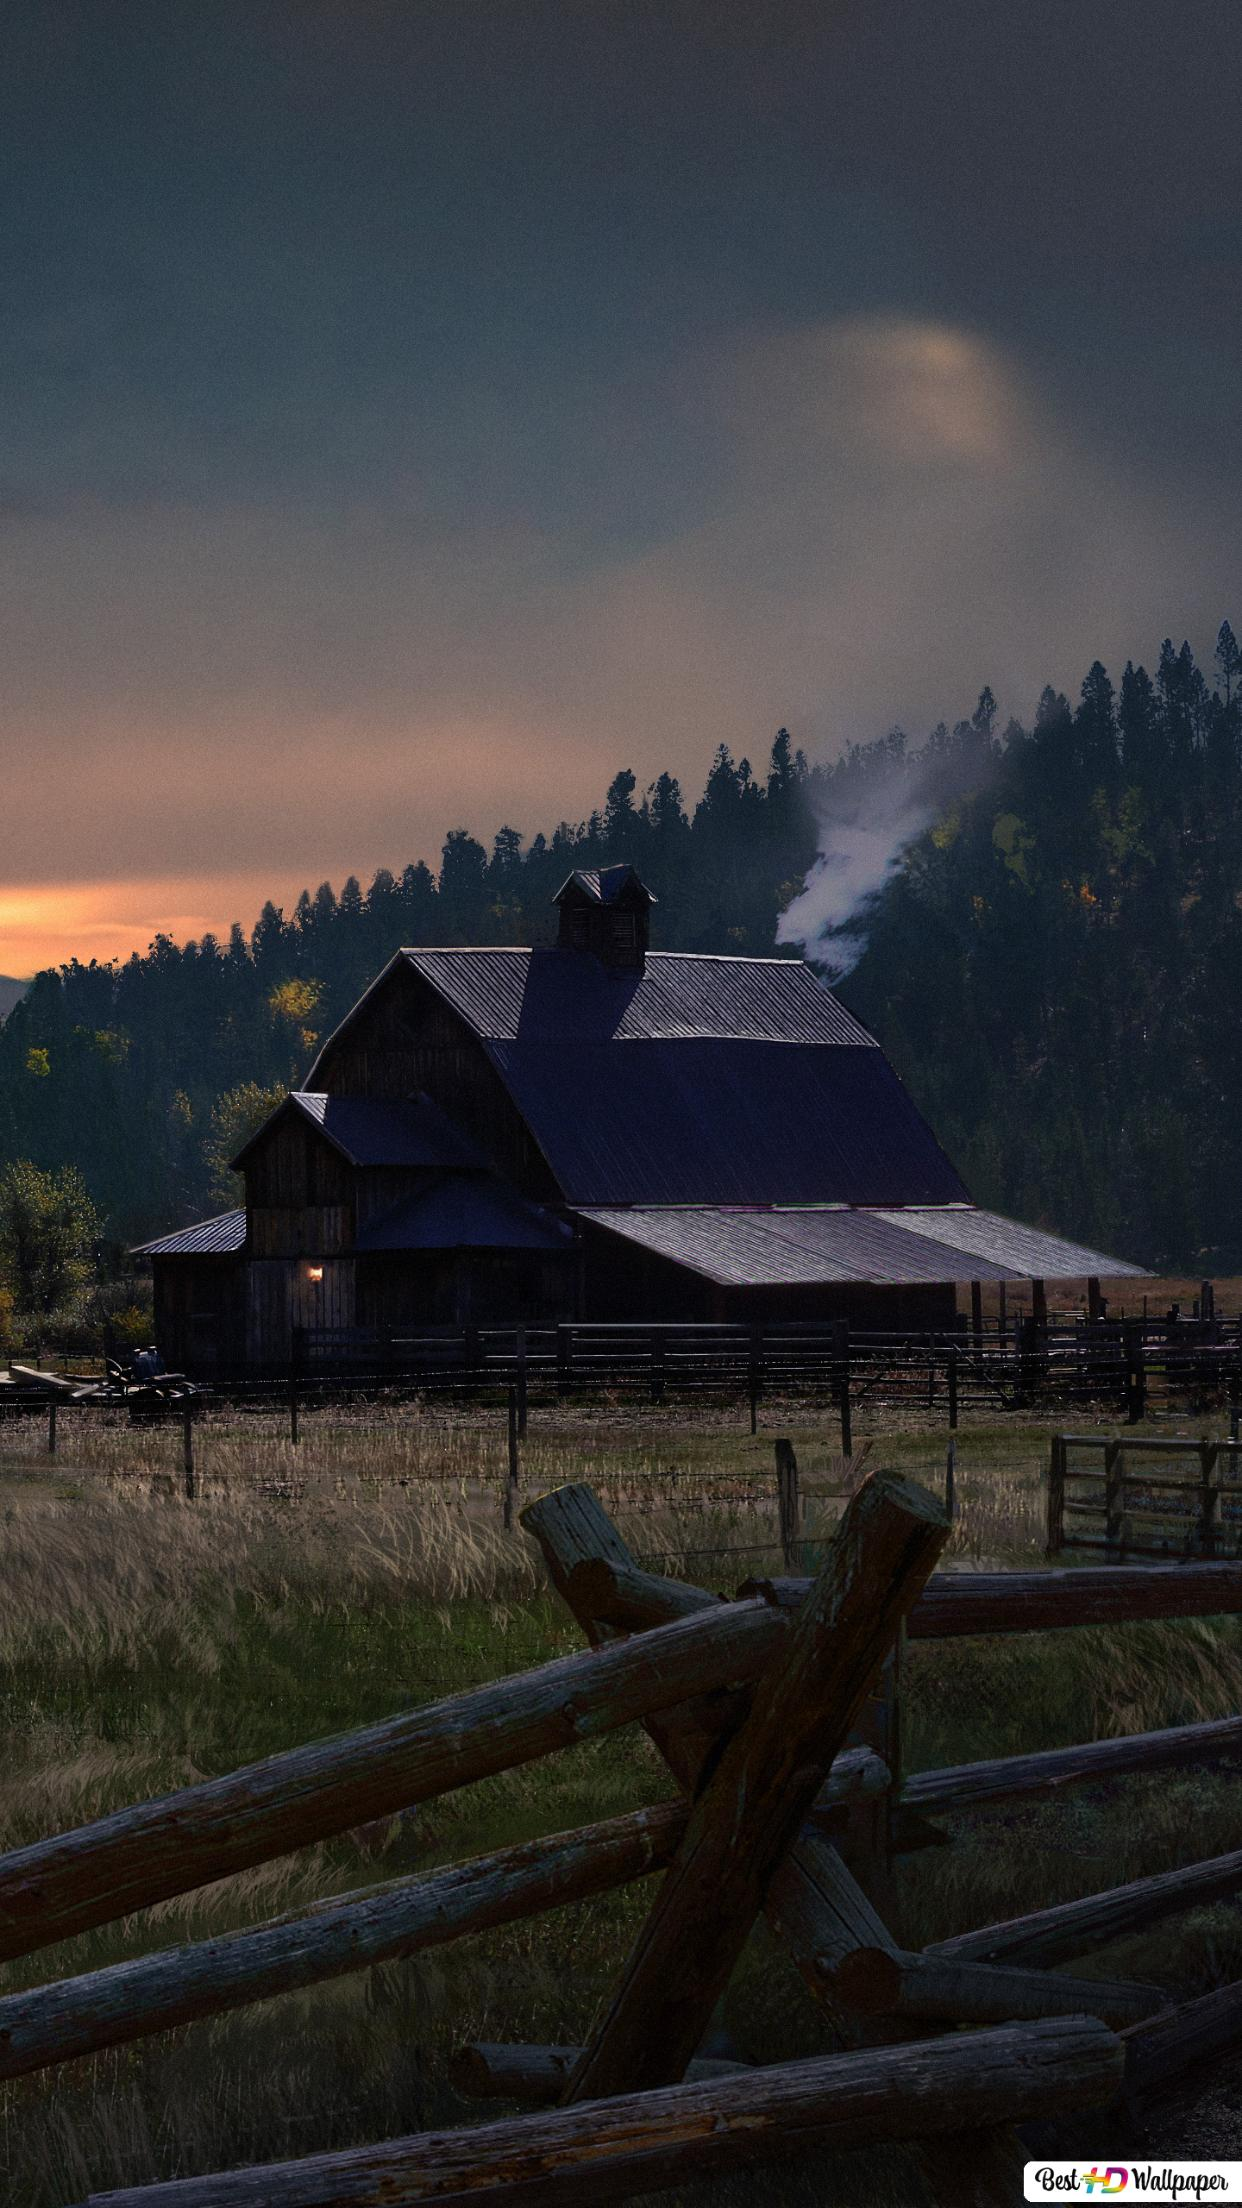 Far Cry 5 Game Sunset In The Village Hd Wallpaper Download